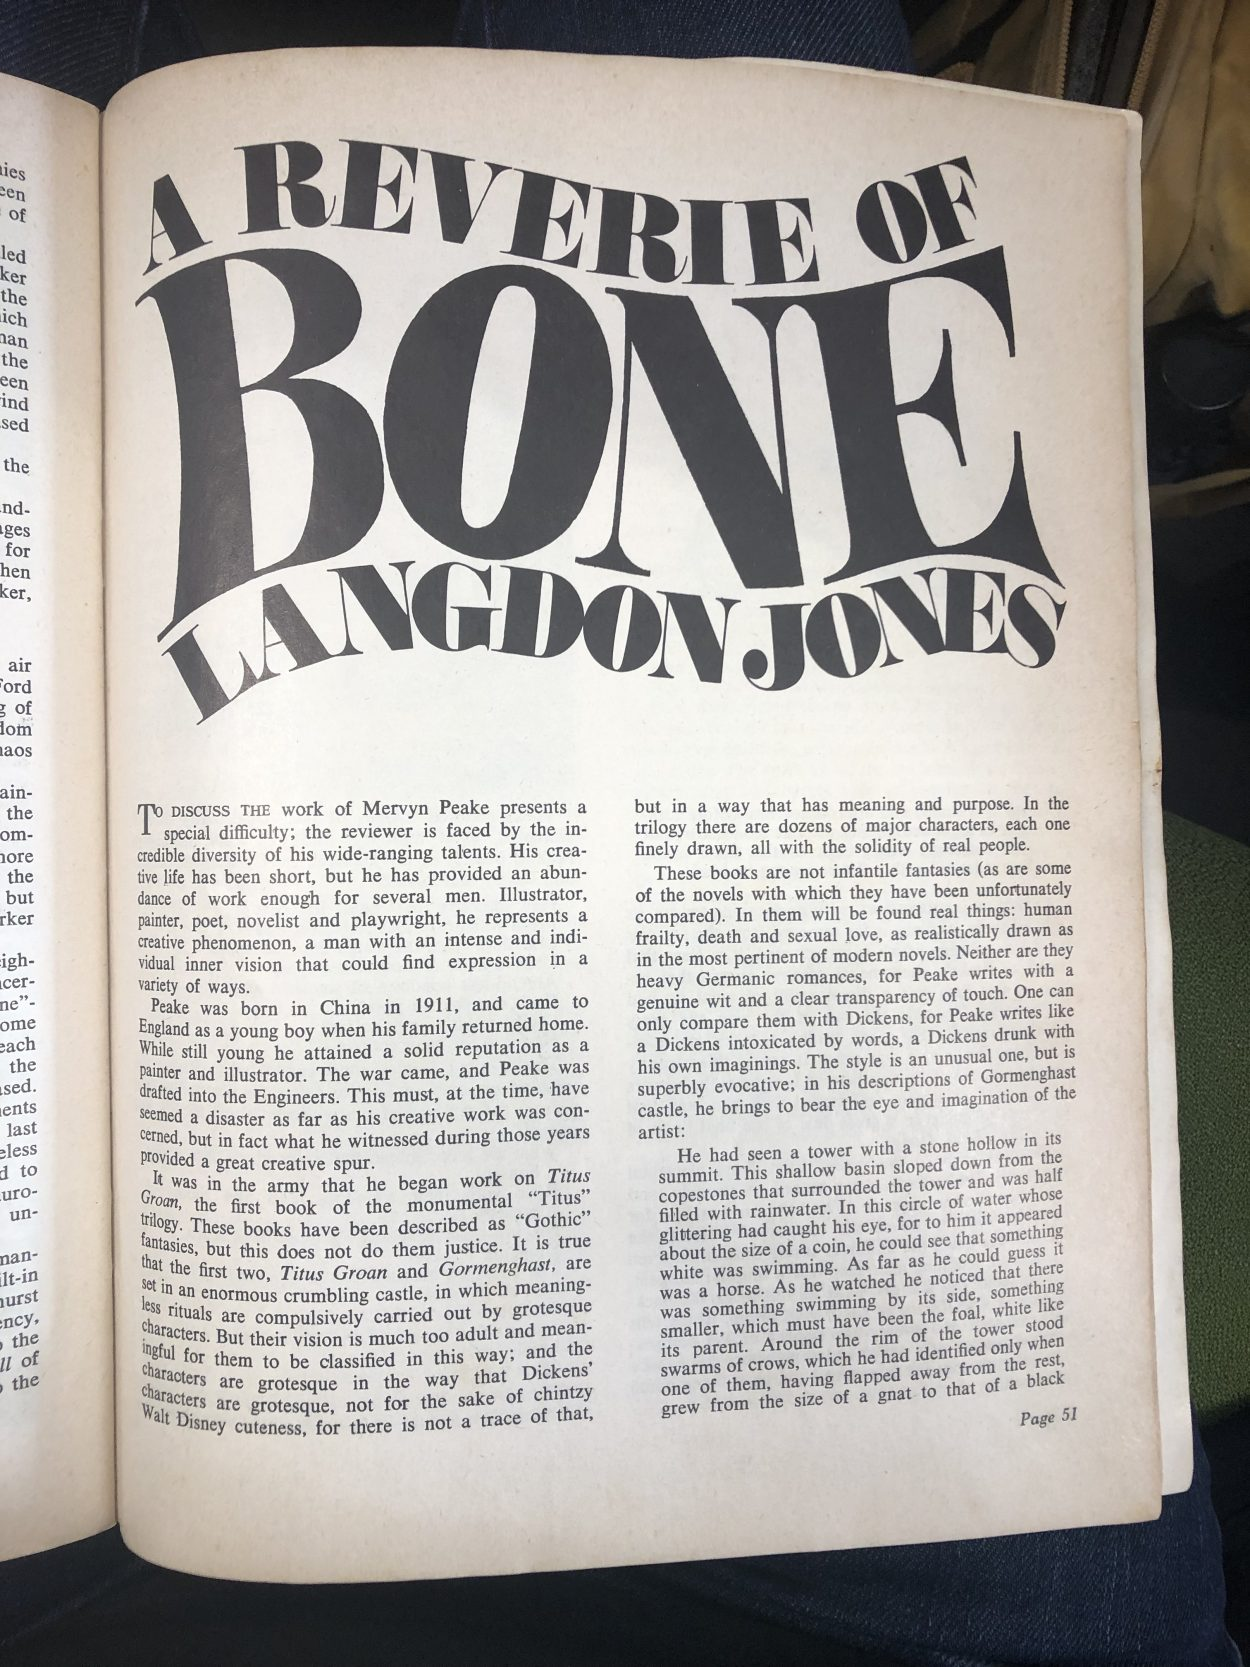 Langdon Jones article from New Worlds